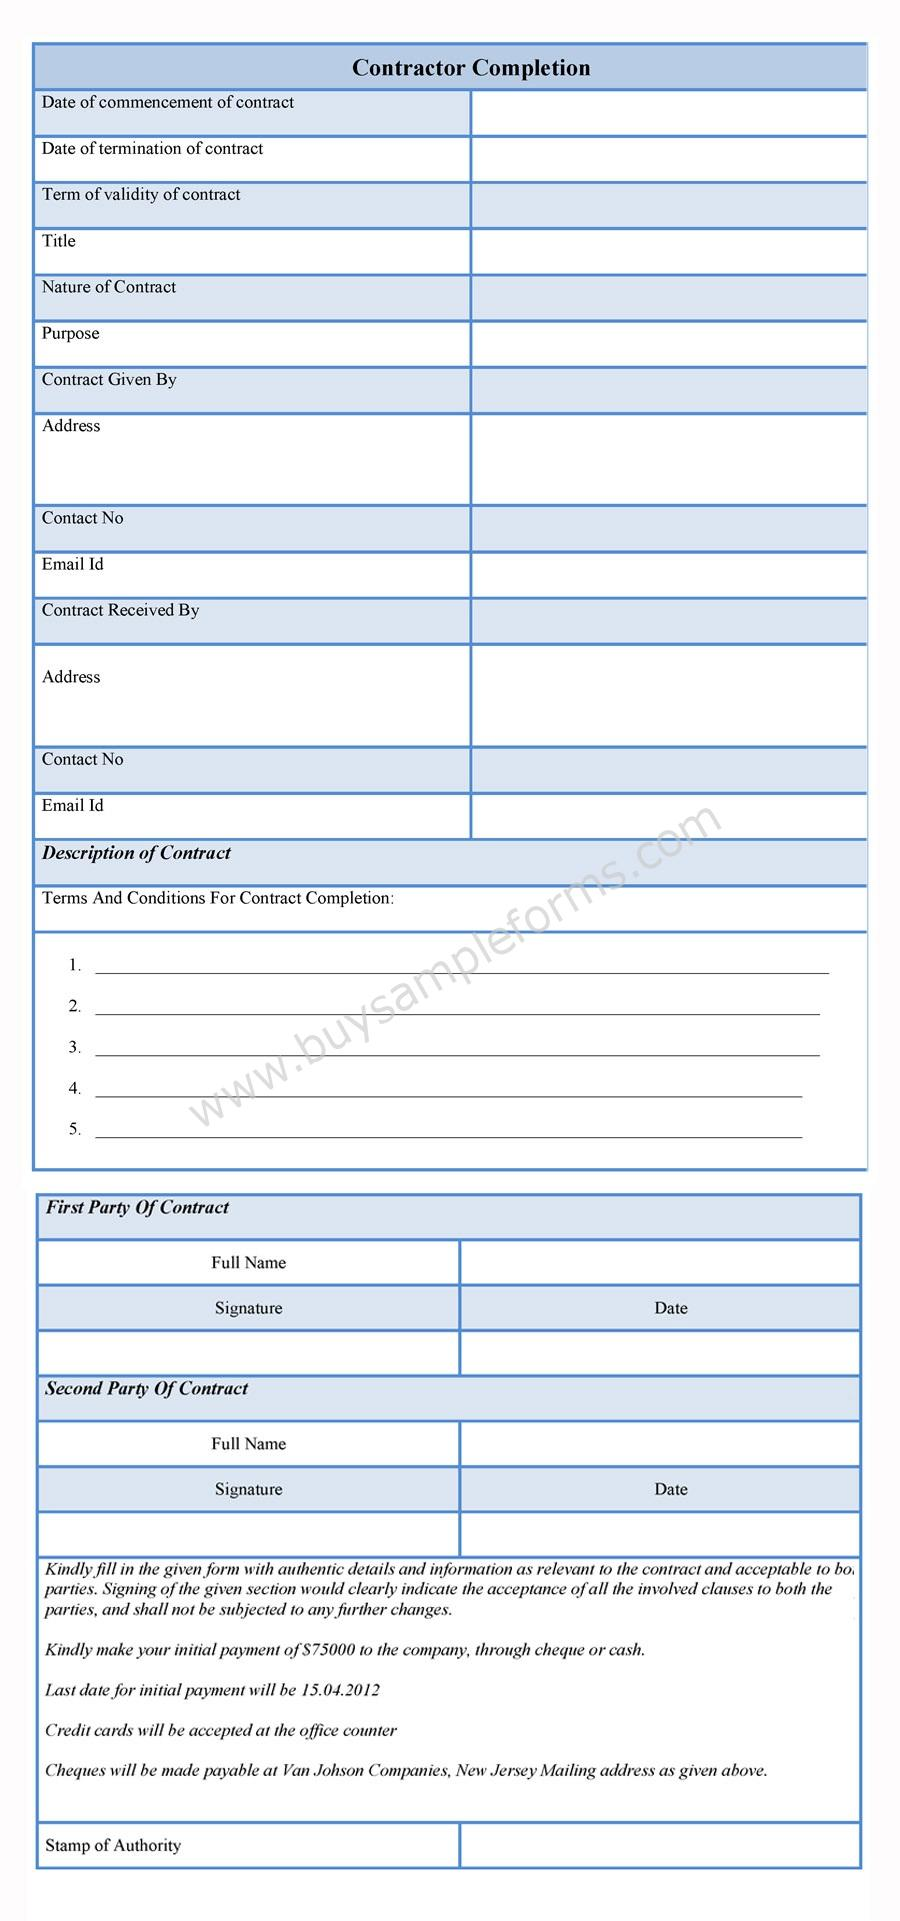 contractor completion form template